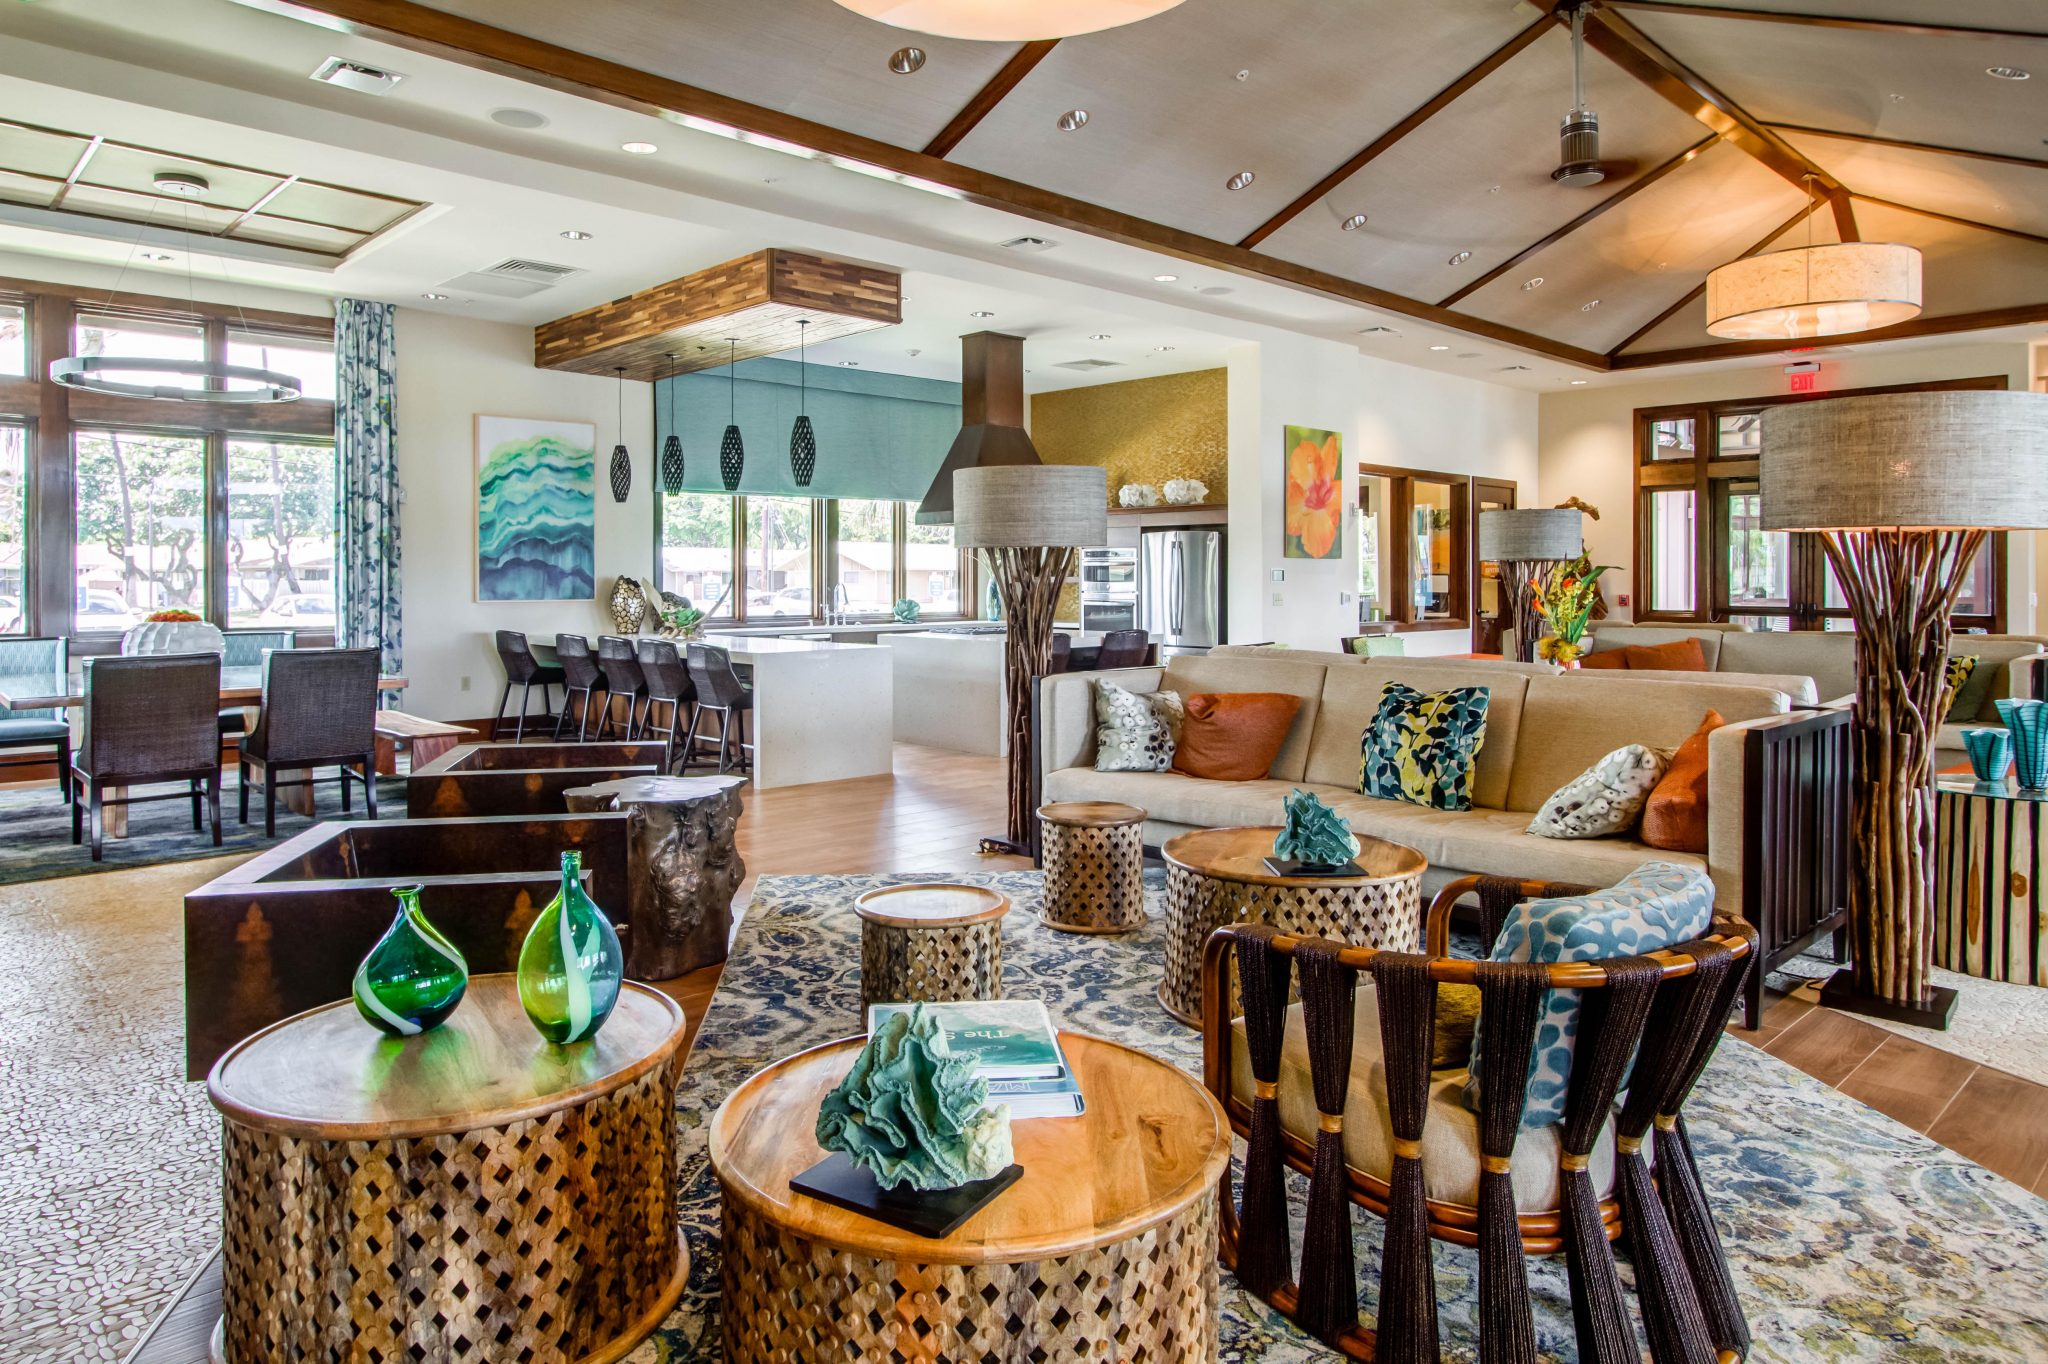 Interior of common area with couches, Polynesian furniture, and kitchen area in background.